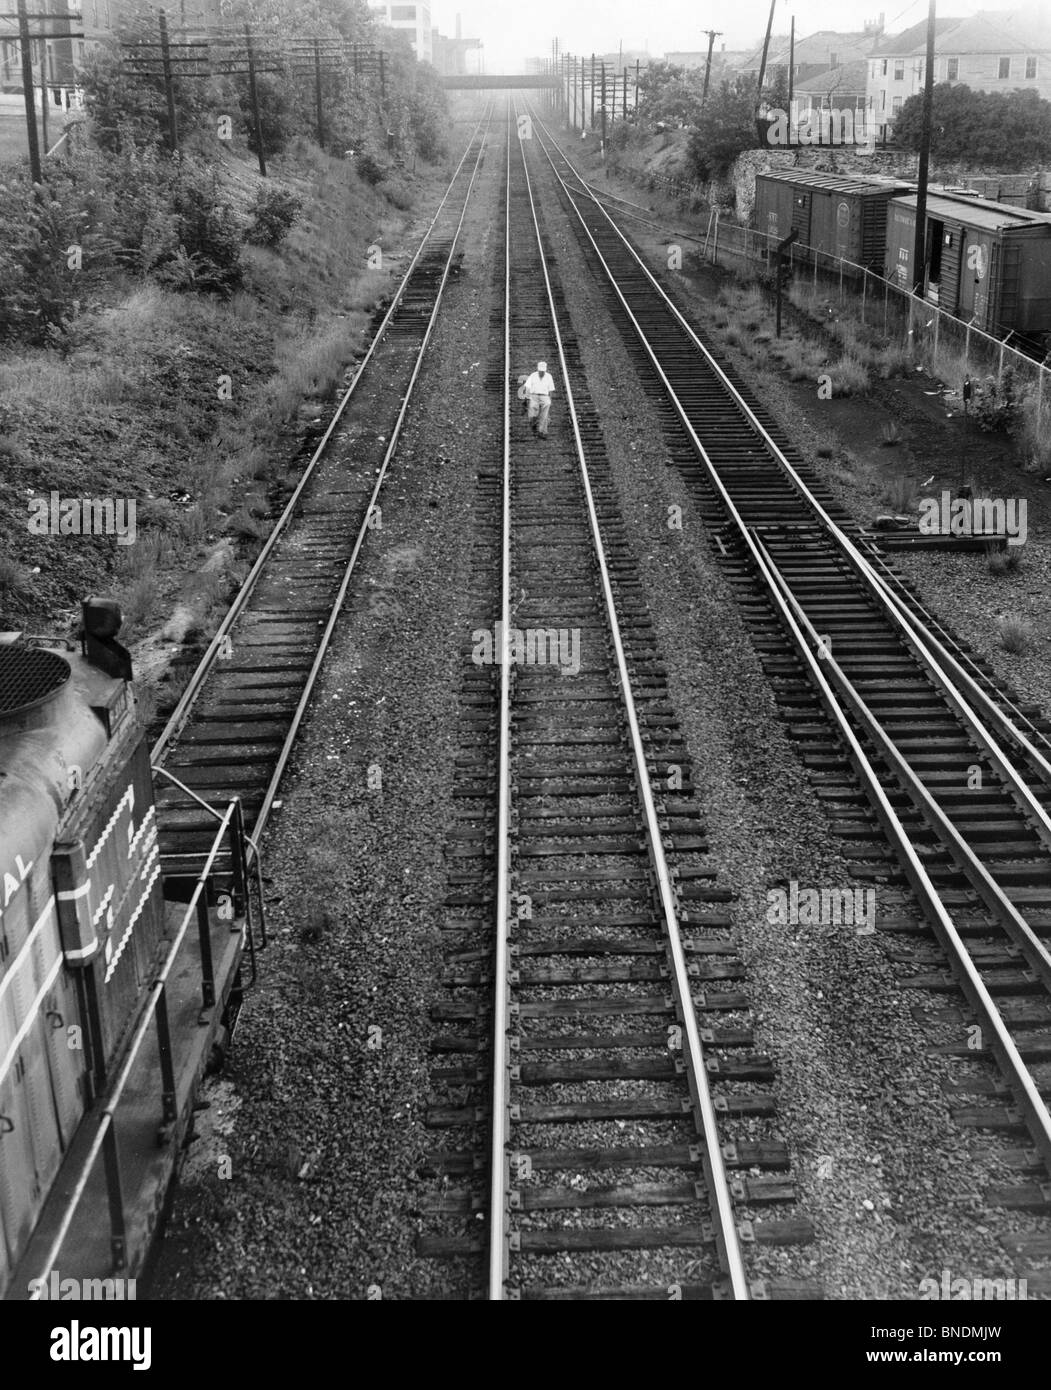 High angle view of a man walking on railroad tracks - Stock Image